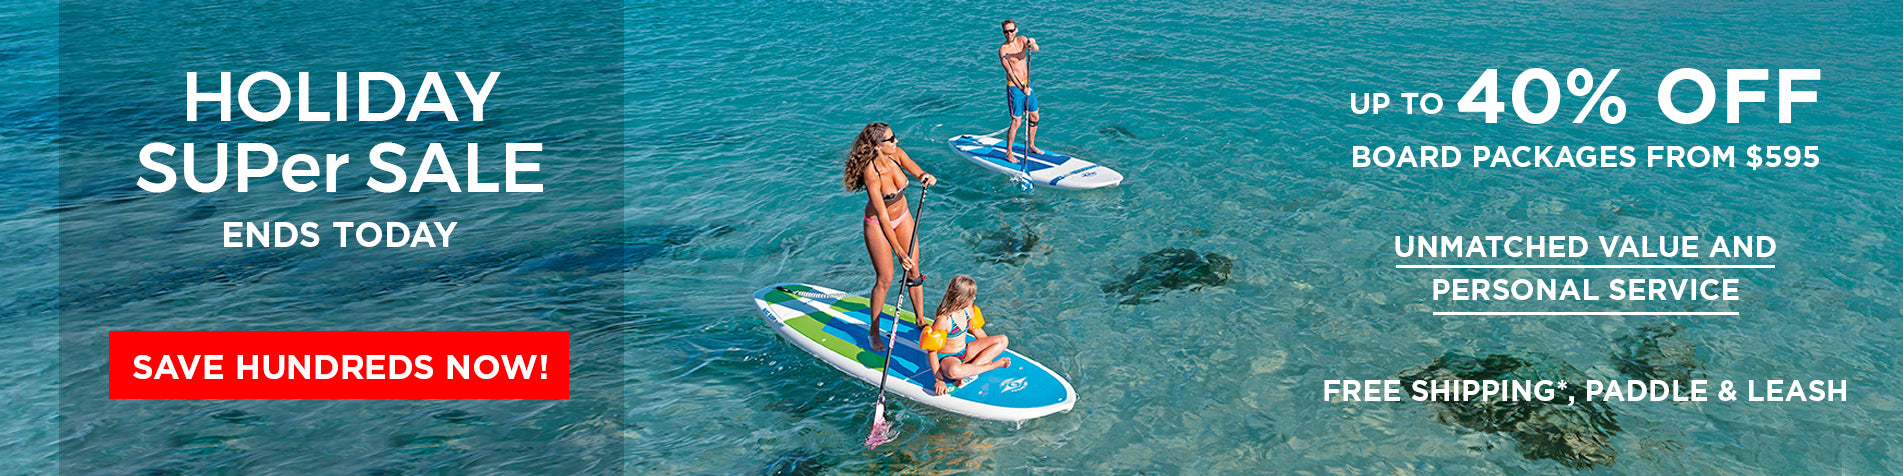 Holiday SUPer Sale - Up to 40% Off Board Packages from $595